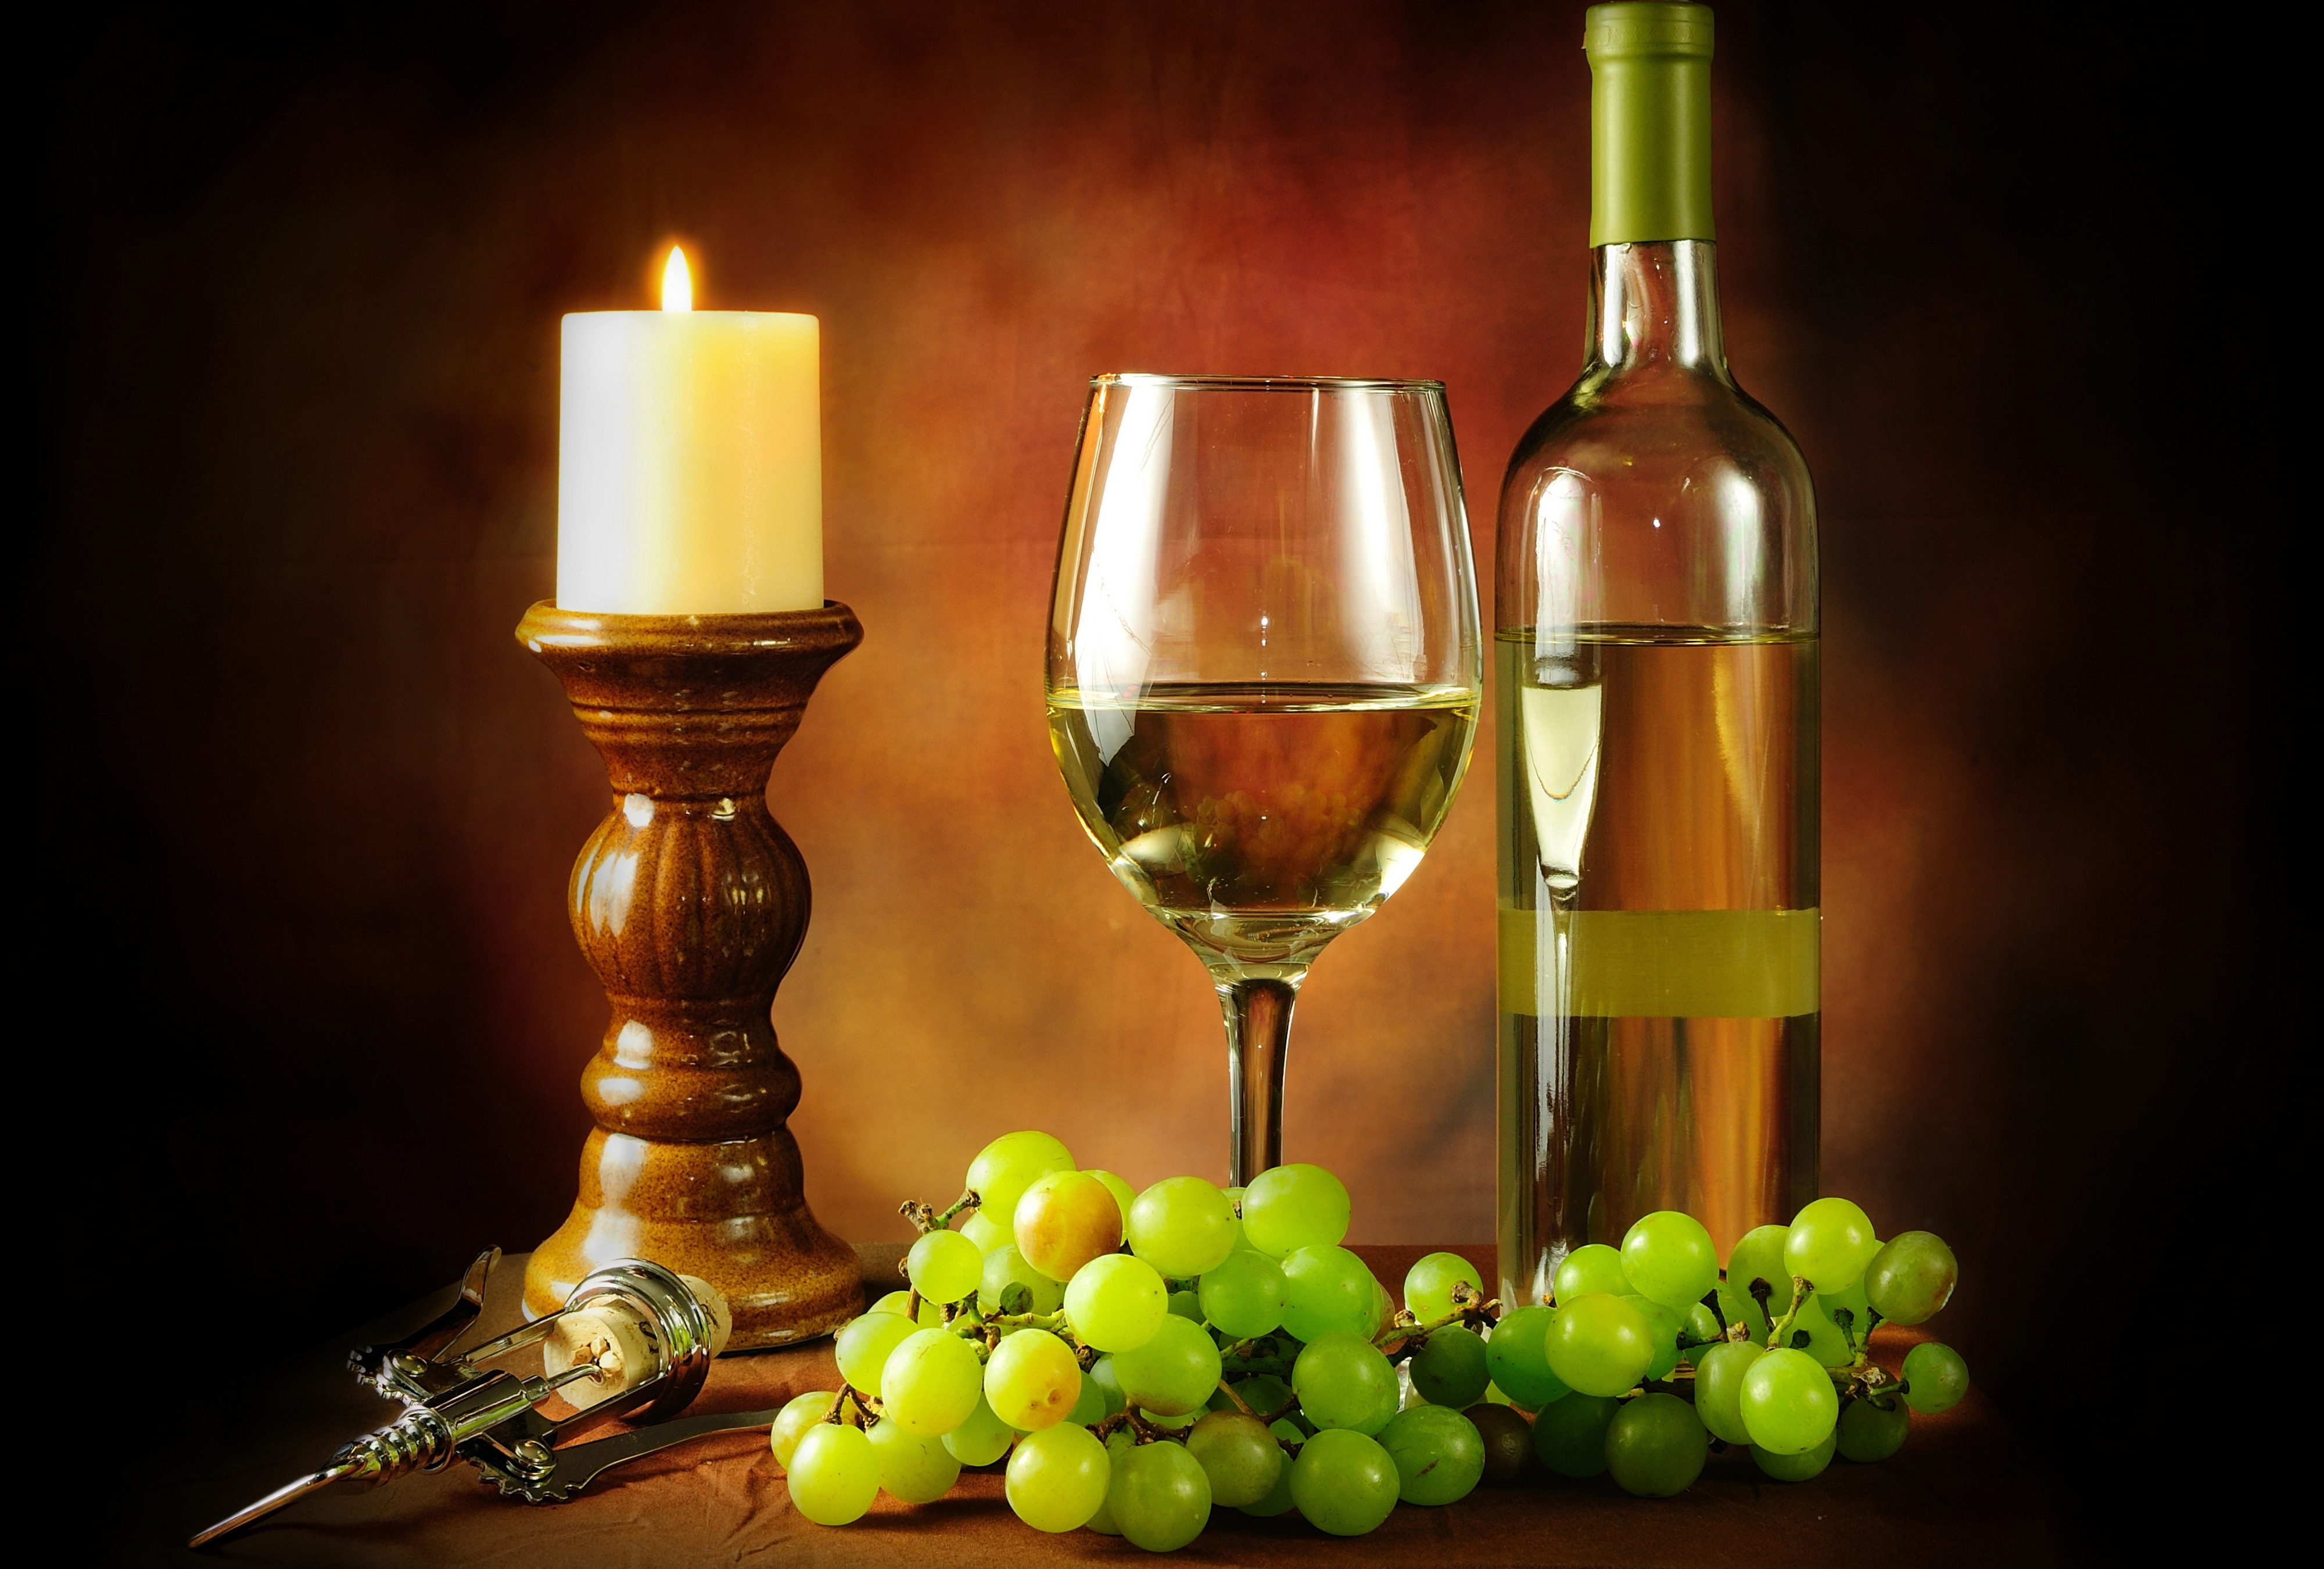 White wine bottle wallpaper images - Difference between wine grapes and table grapes ...